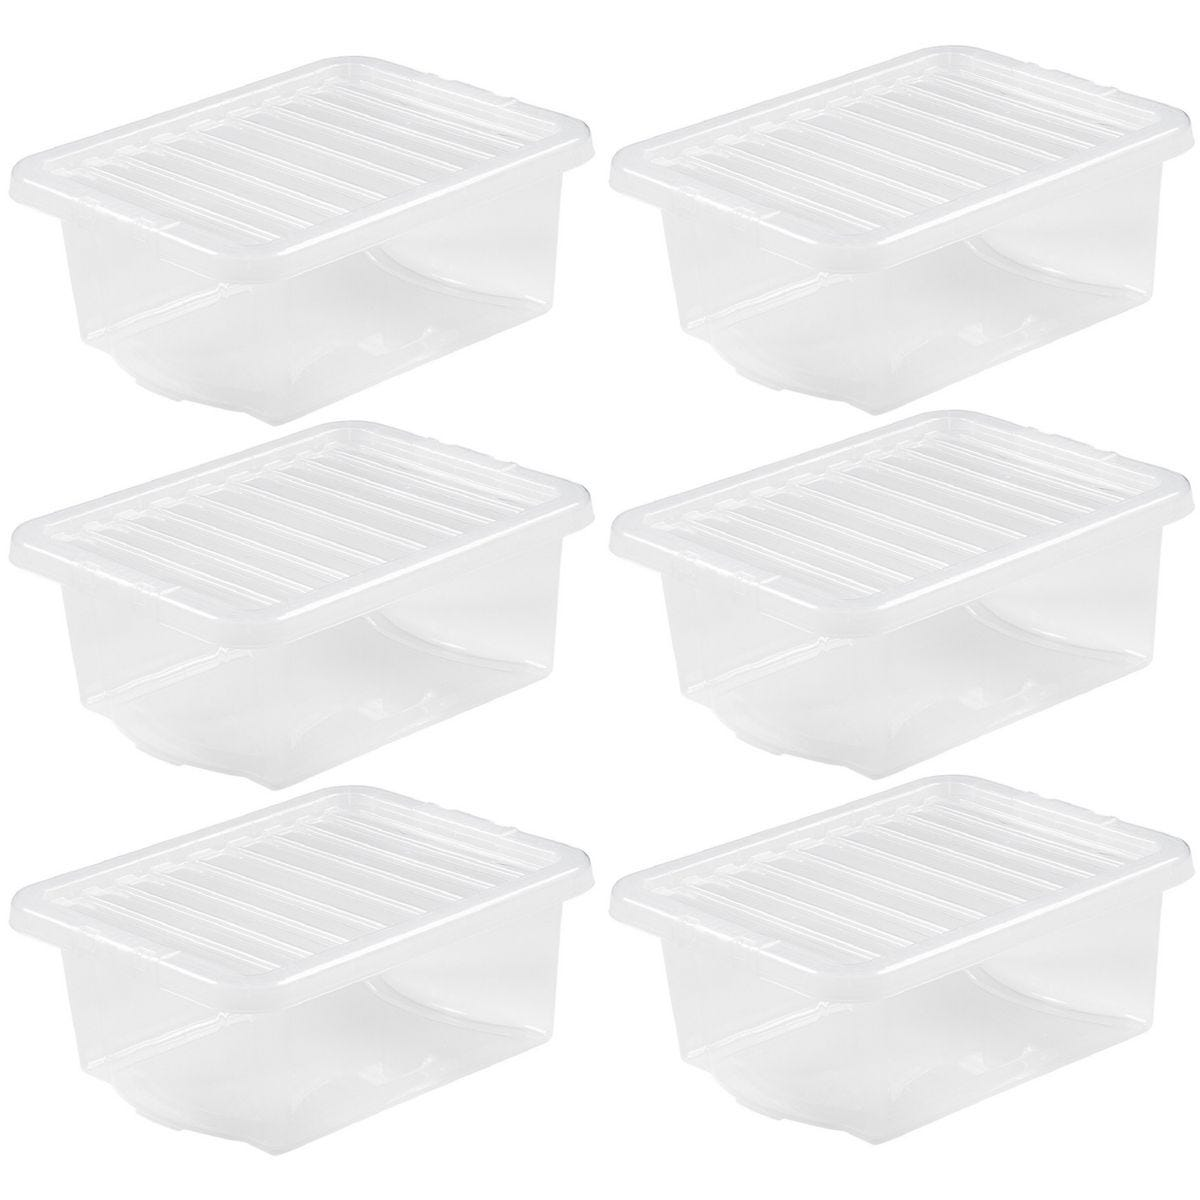 Wham Crystal Clear Storage Box with Lid 16L - Set of 6